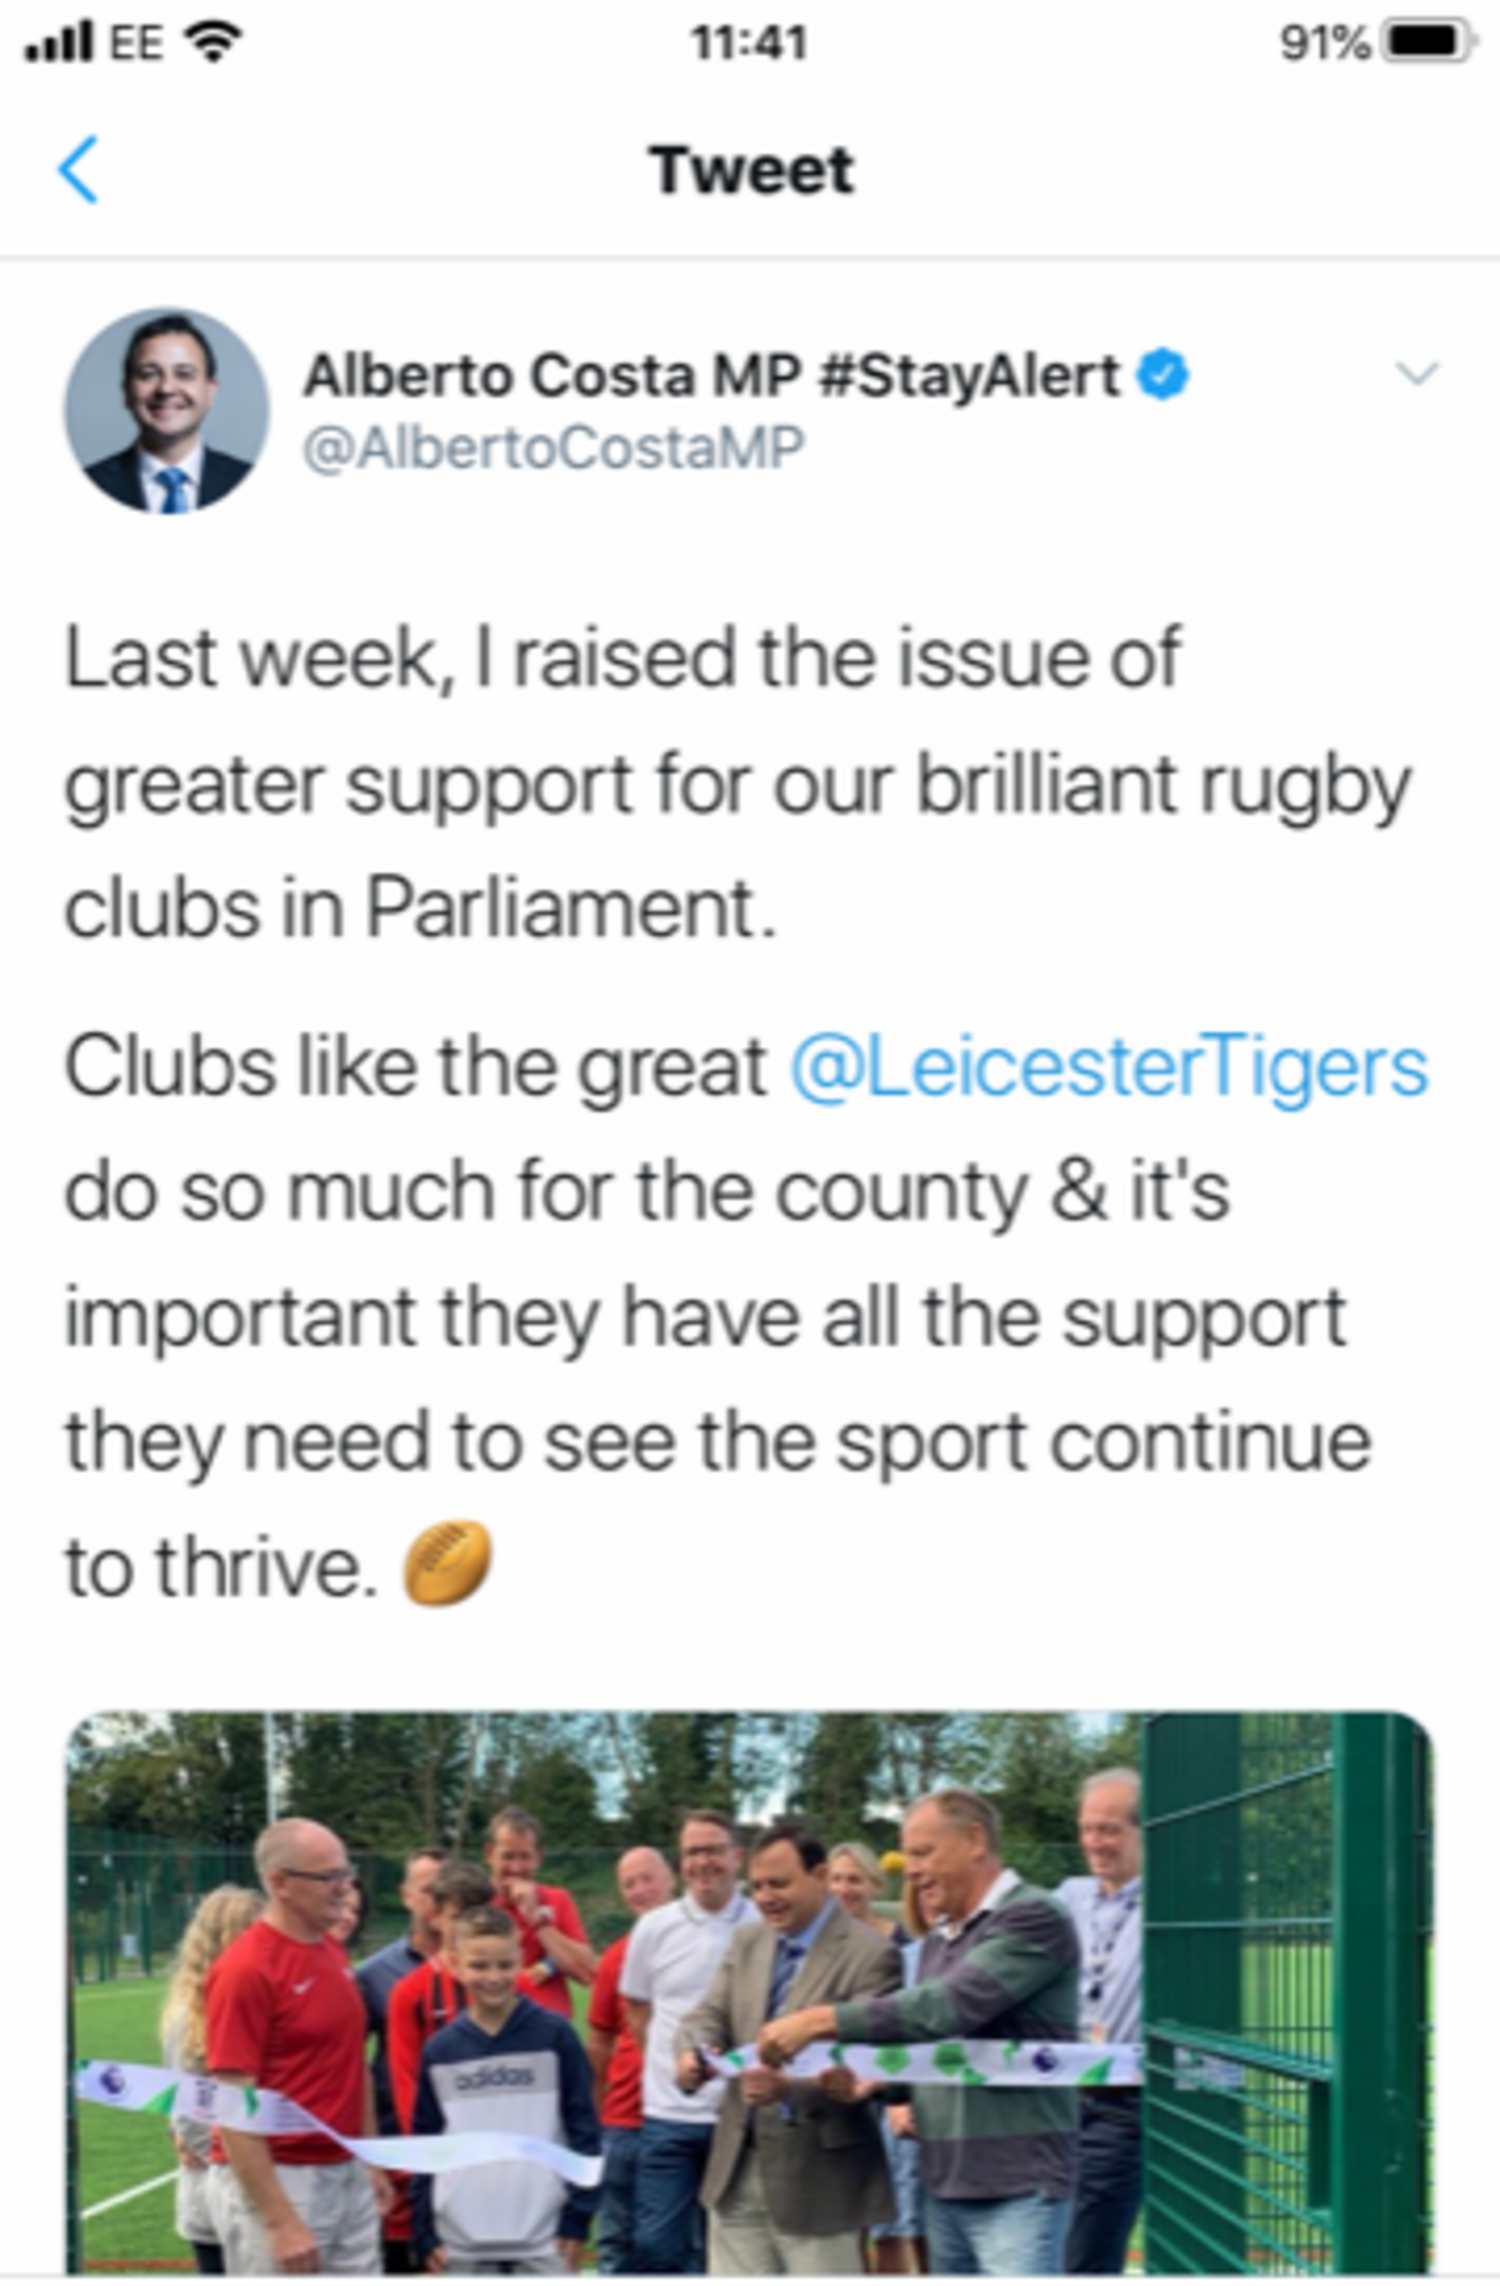 Support for rugby clubs